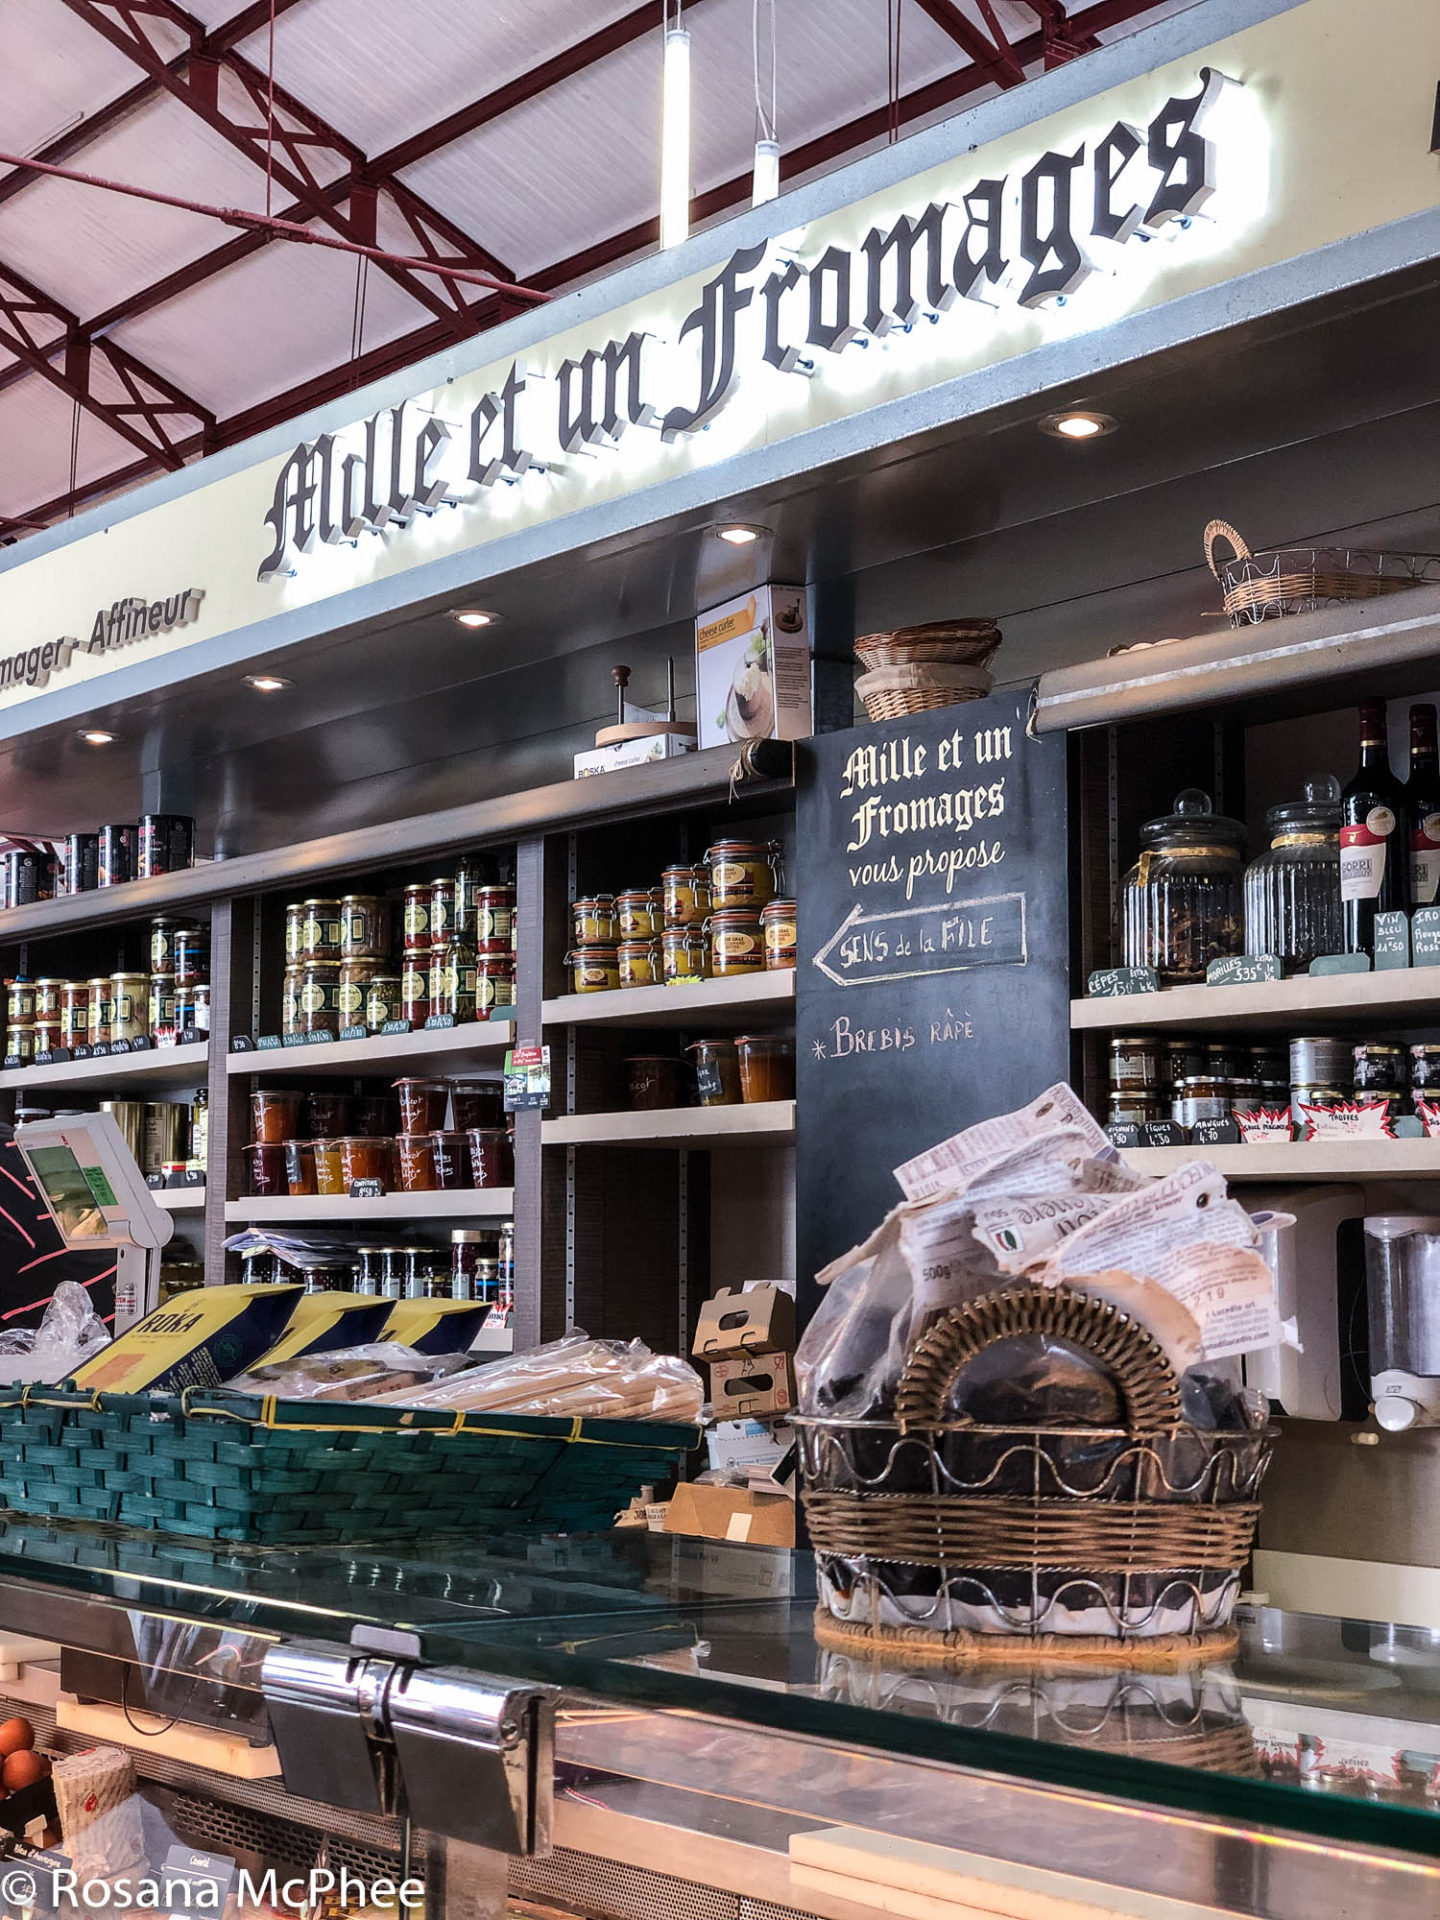 A Short Break In Biarritz Pays Basque France Hot And Chilli - Store Bleu Canard